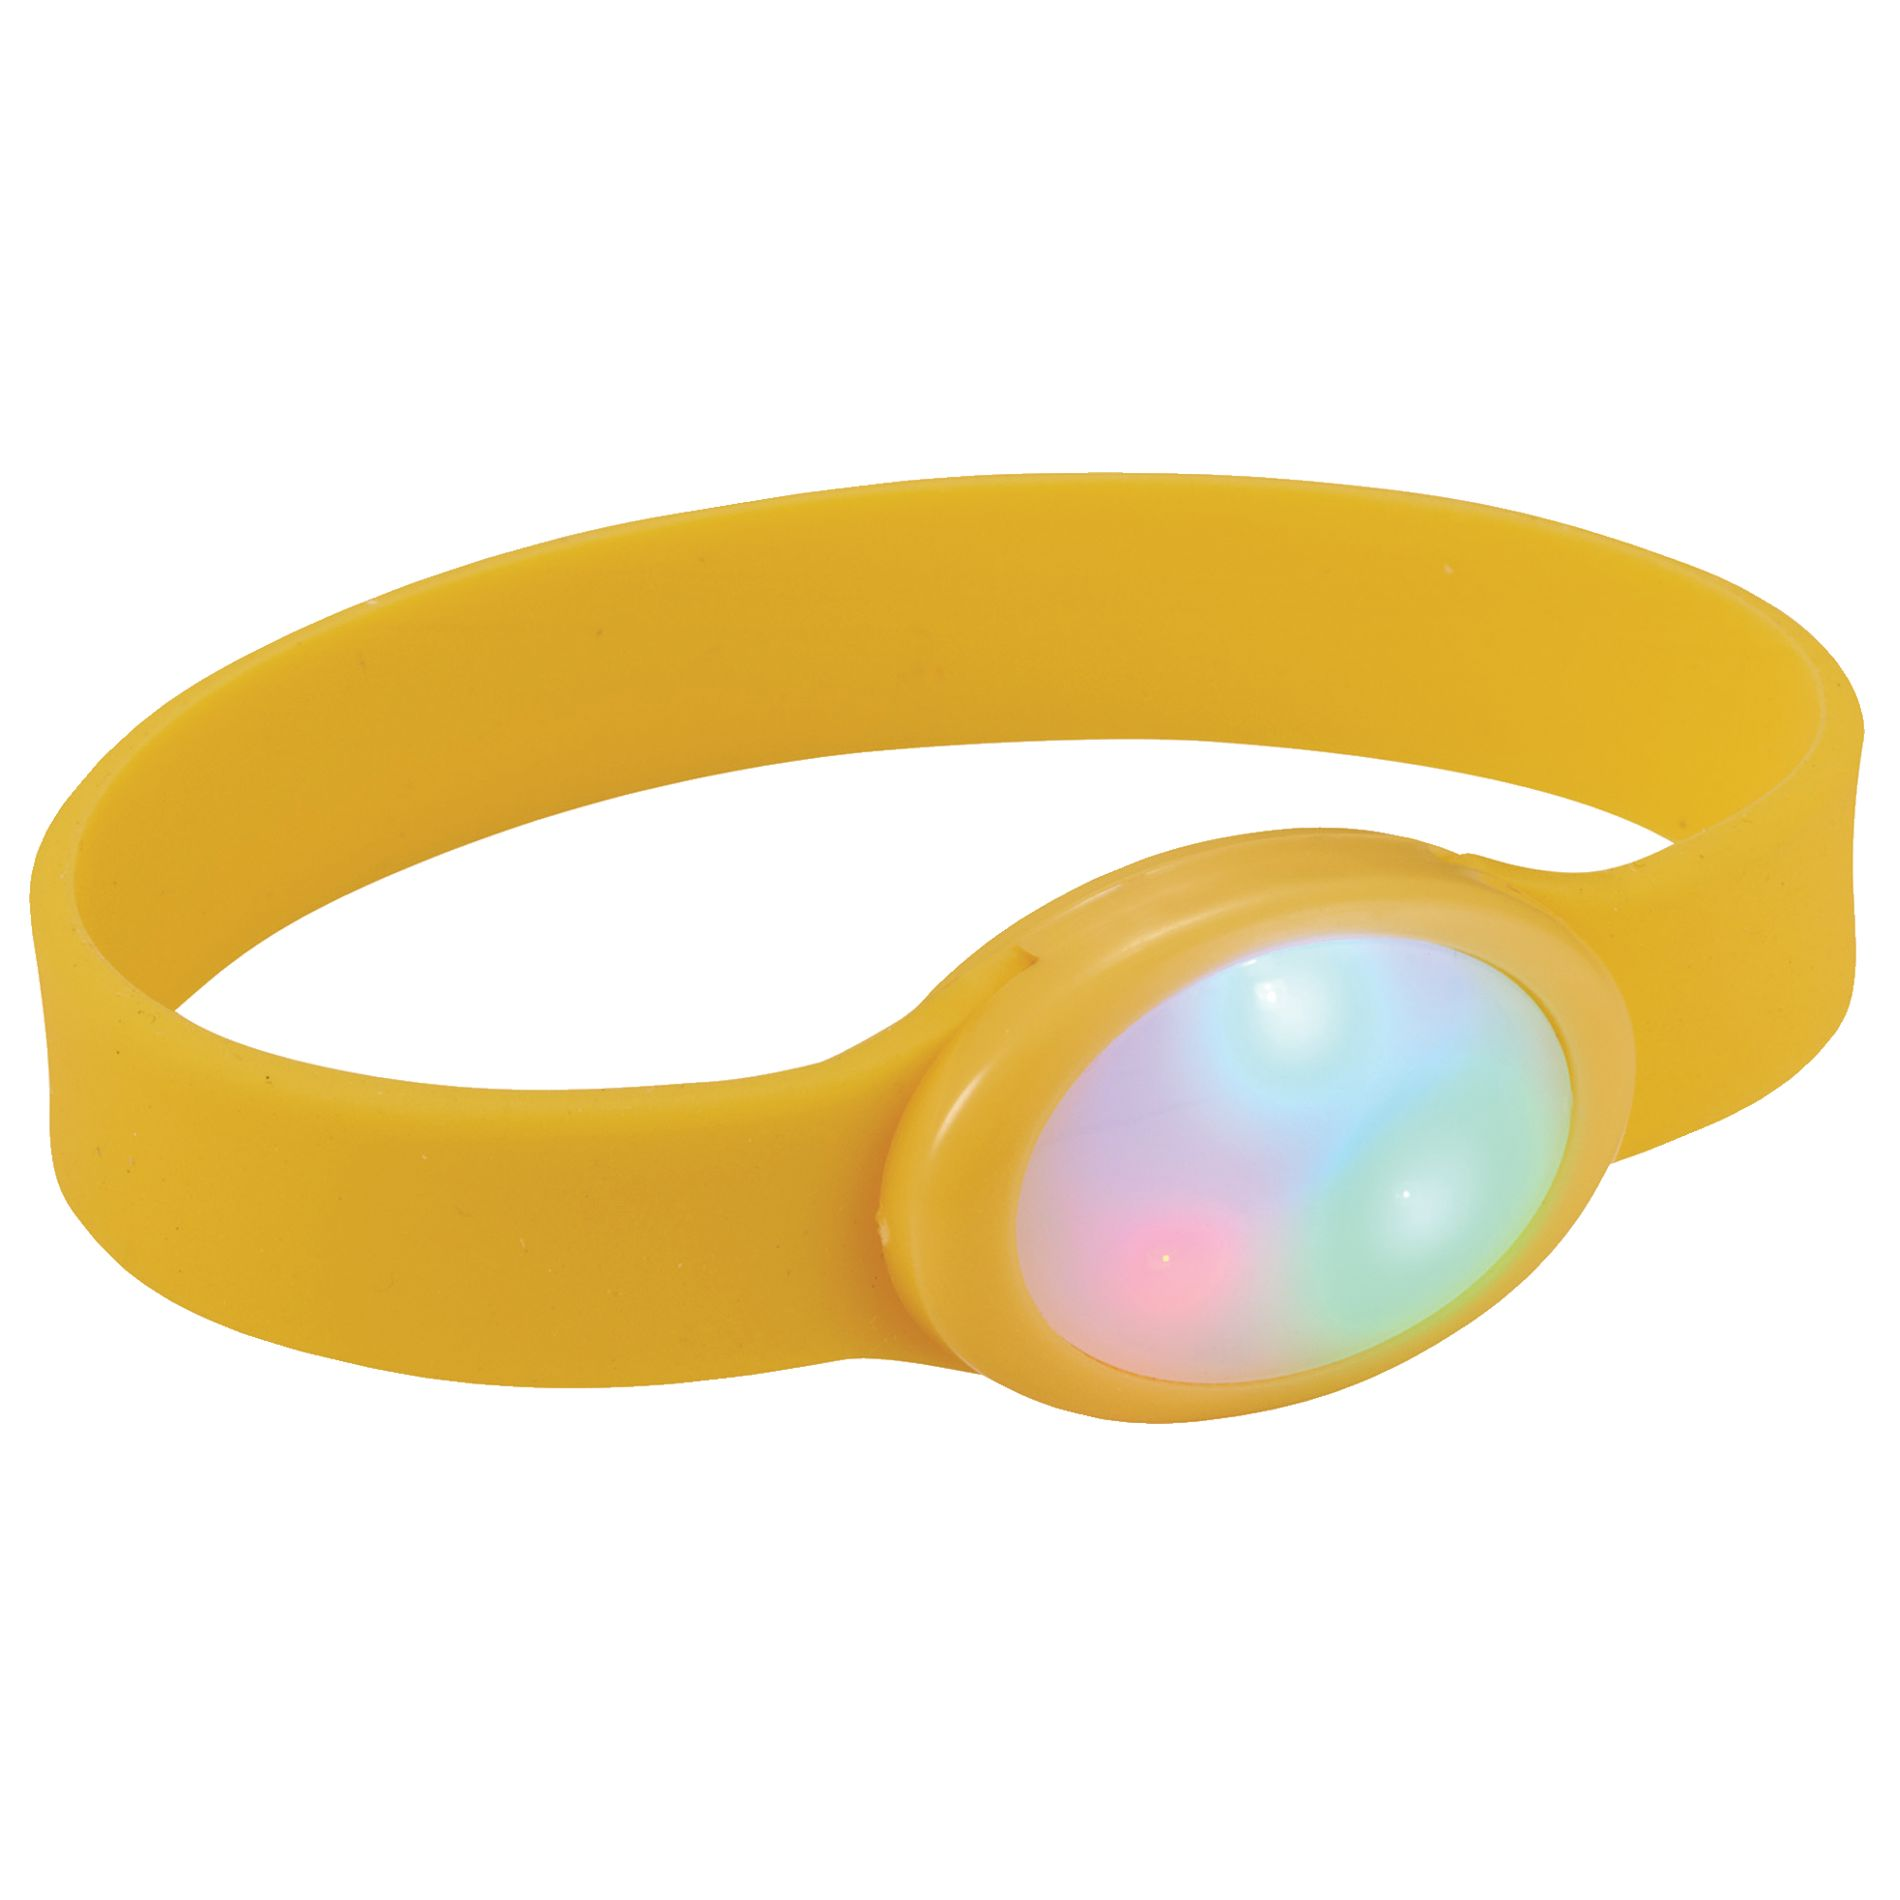 BRAZALETE MULTICOLOR DE LED FLASH   AM